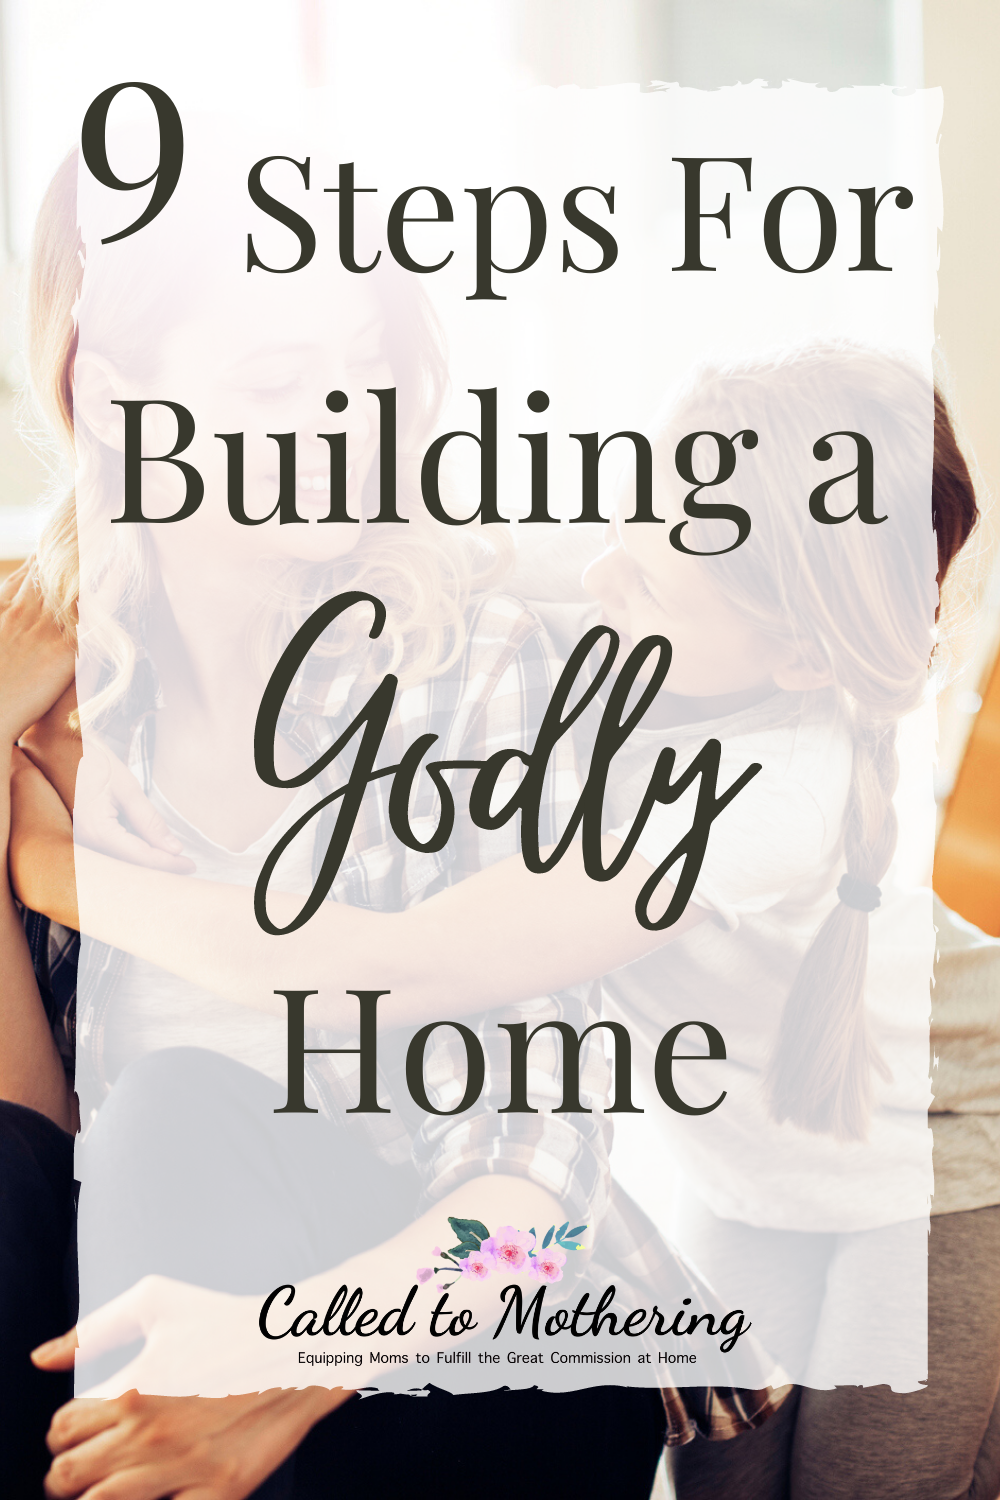 Our children and families need a peaceful, godly home so they can thrive. Here are 9 practical steps you can take to start creating the kind of haven your family needs! #godlyhome #peacefulhome #family